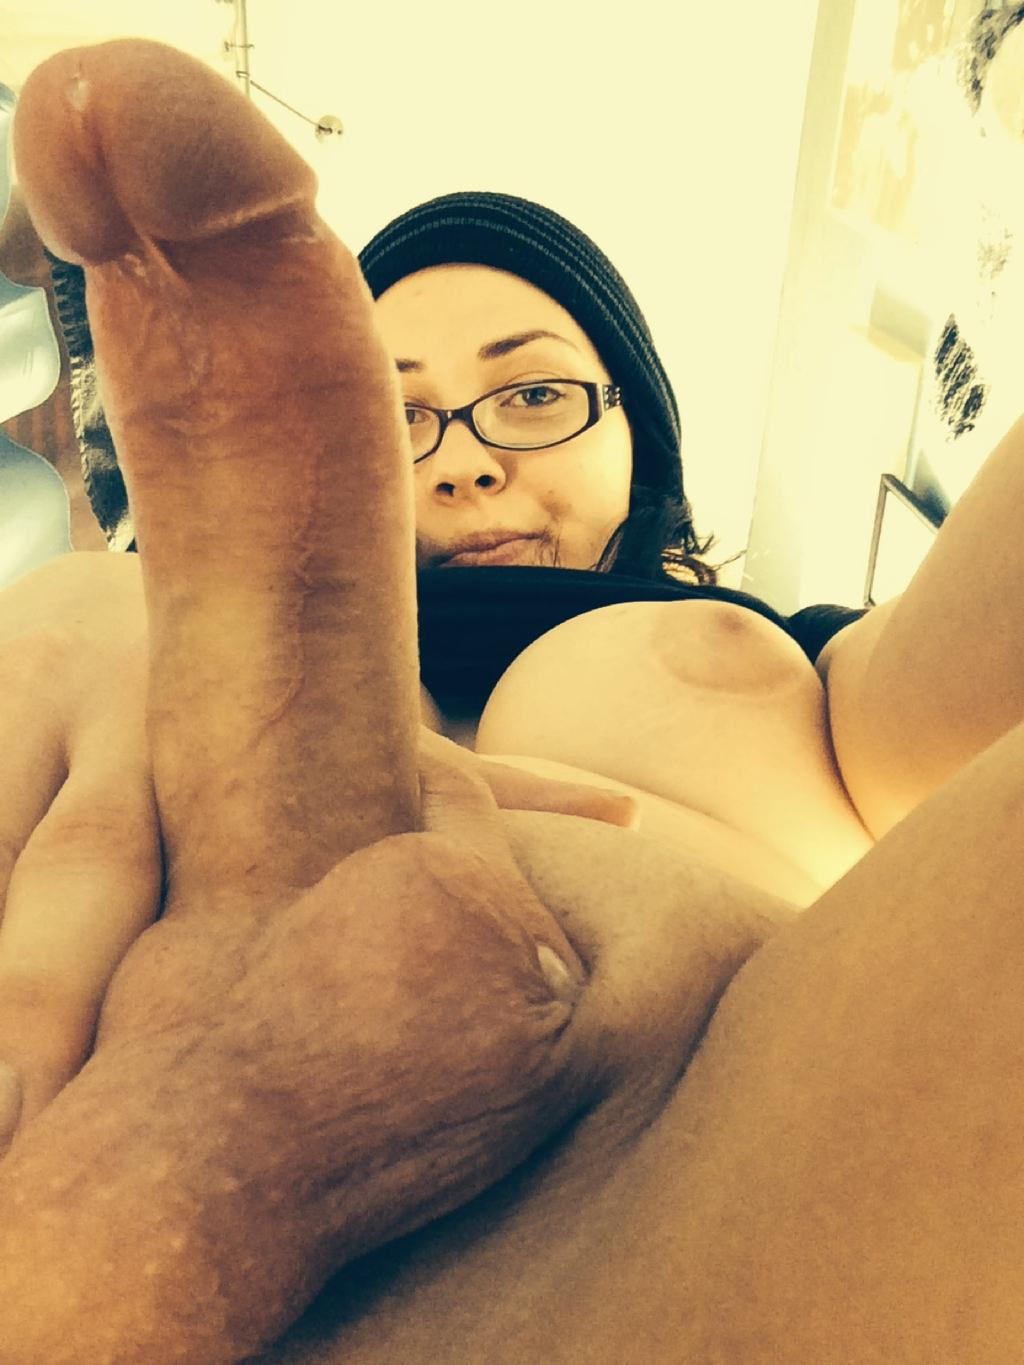 Pov Love Playing With My Cock ♡♥♡♥ 2